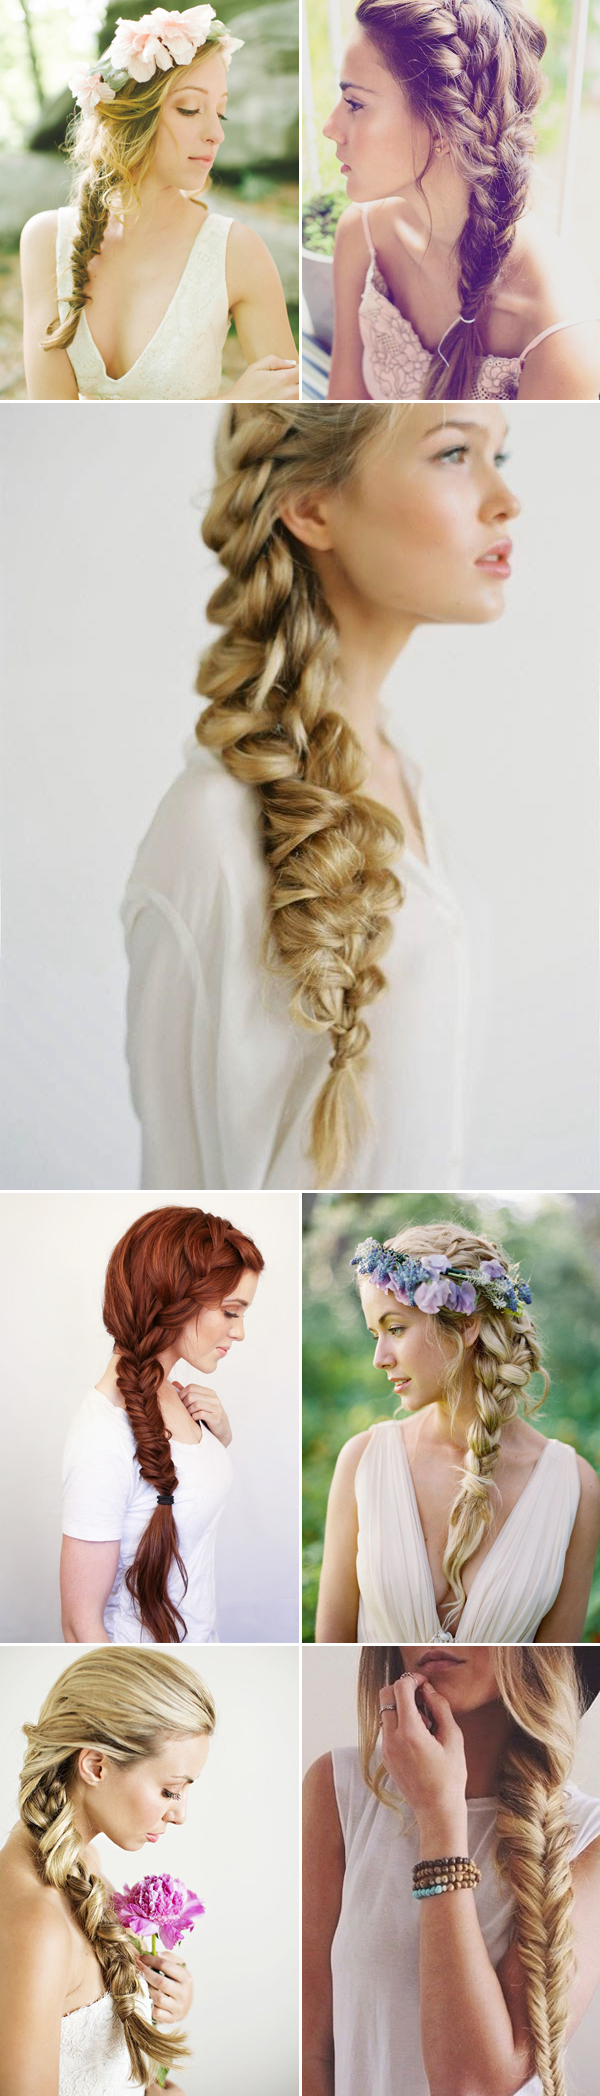 Oh So Romantic! 20 Natural Bohemian Braided Hairstyles ...